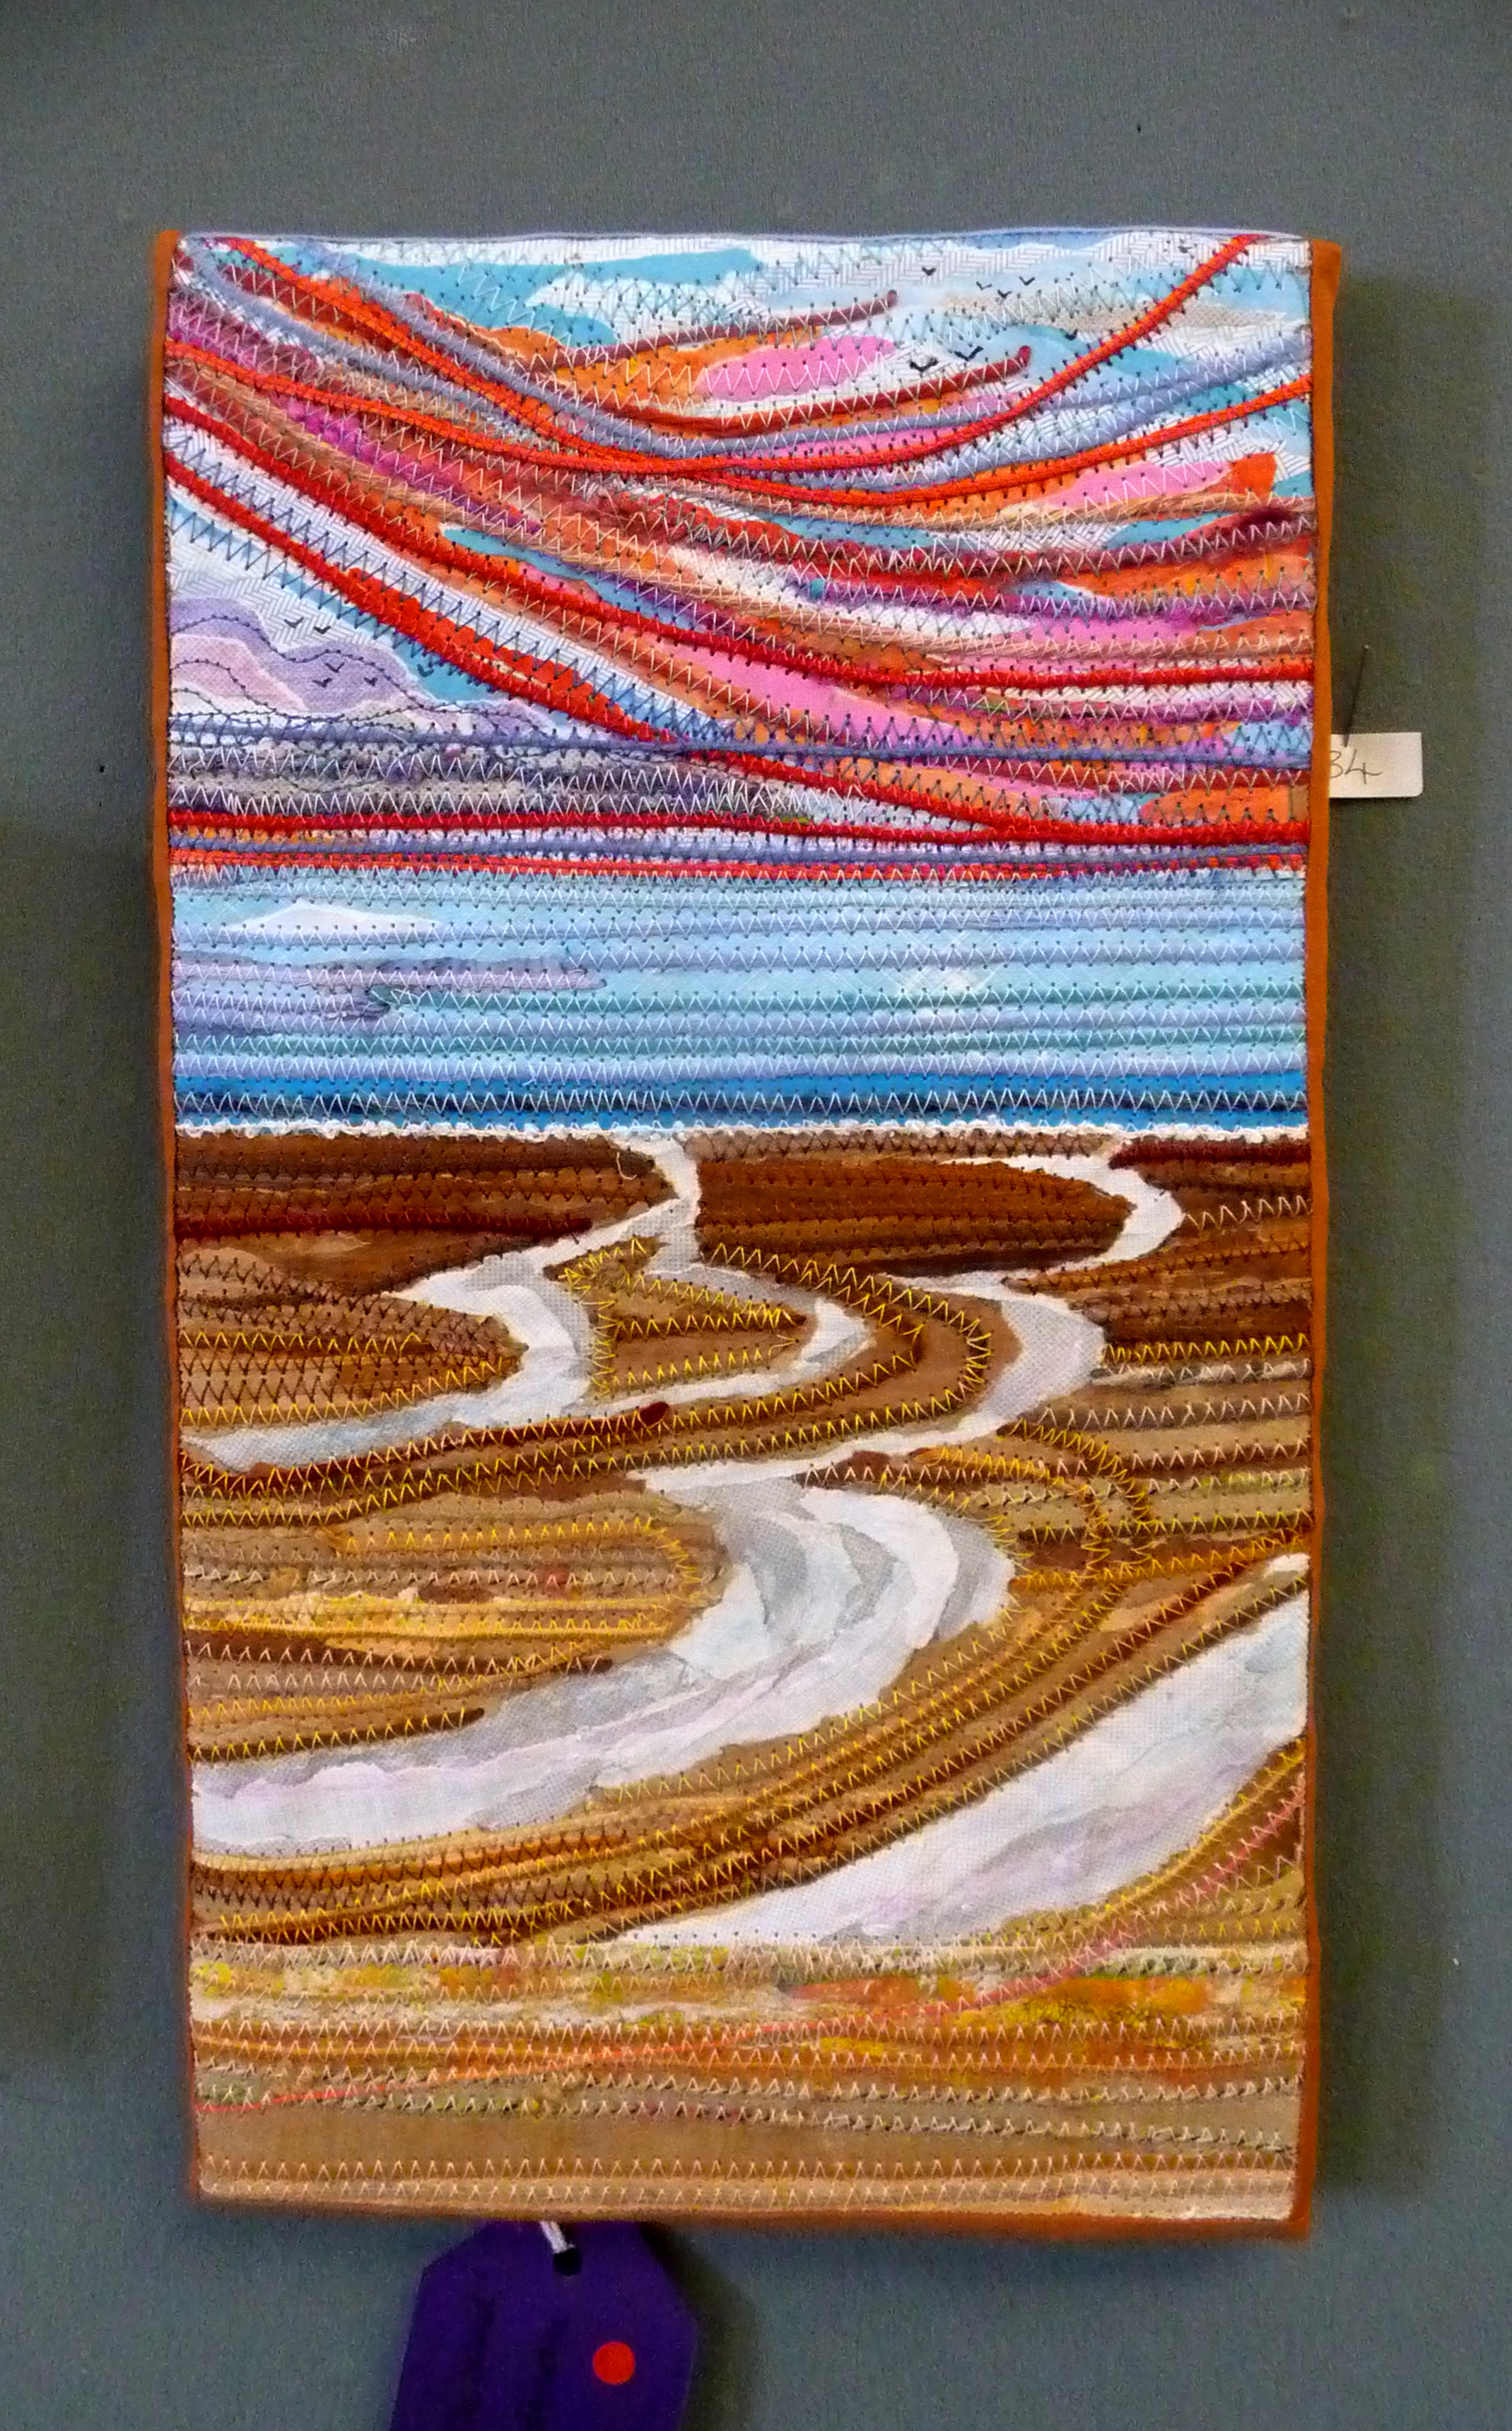 LINES IN THE SAND by Sue Boardman